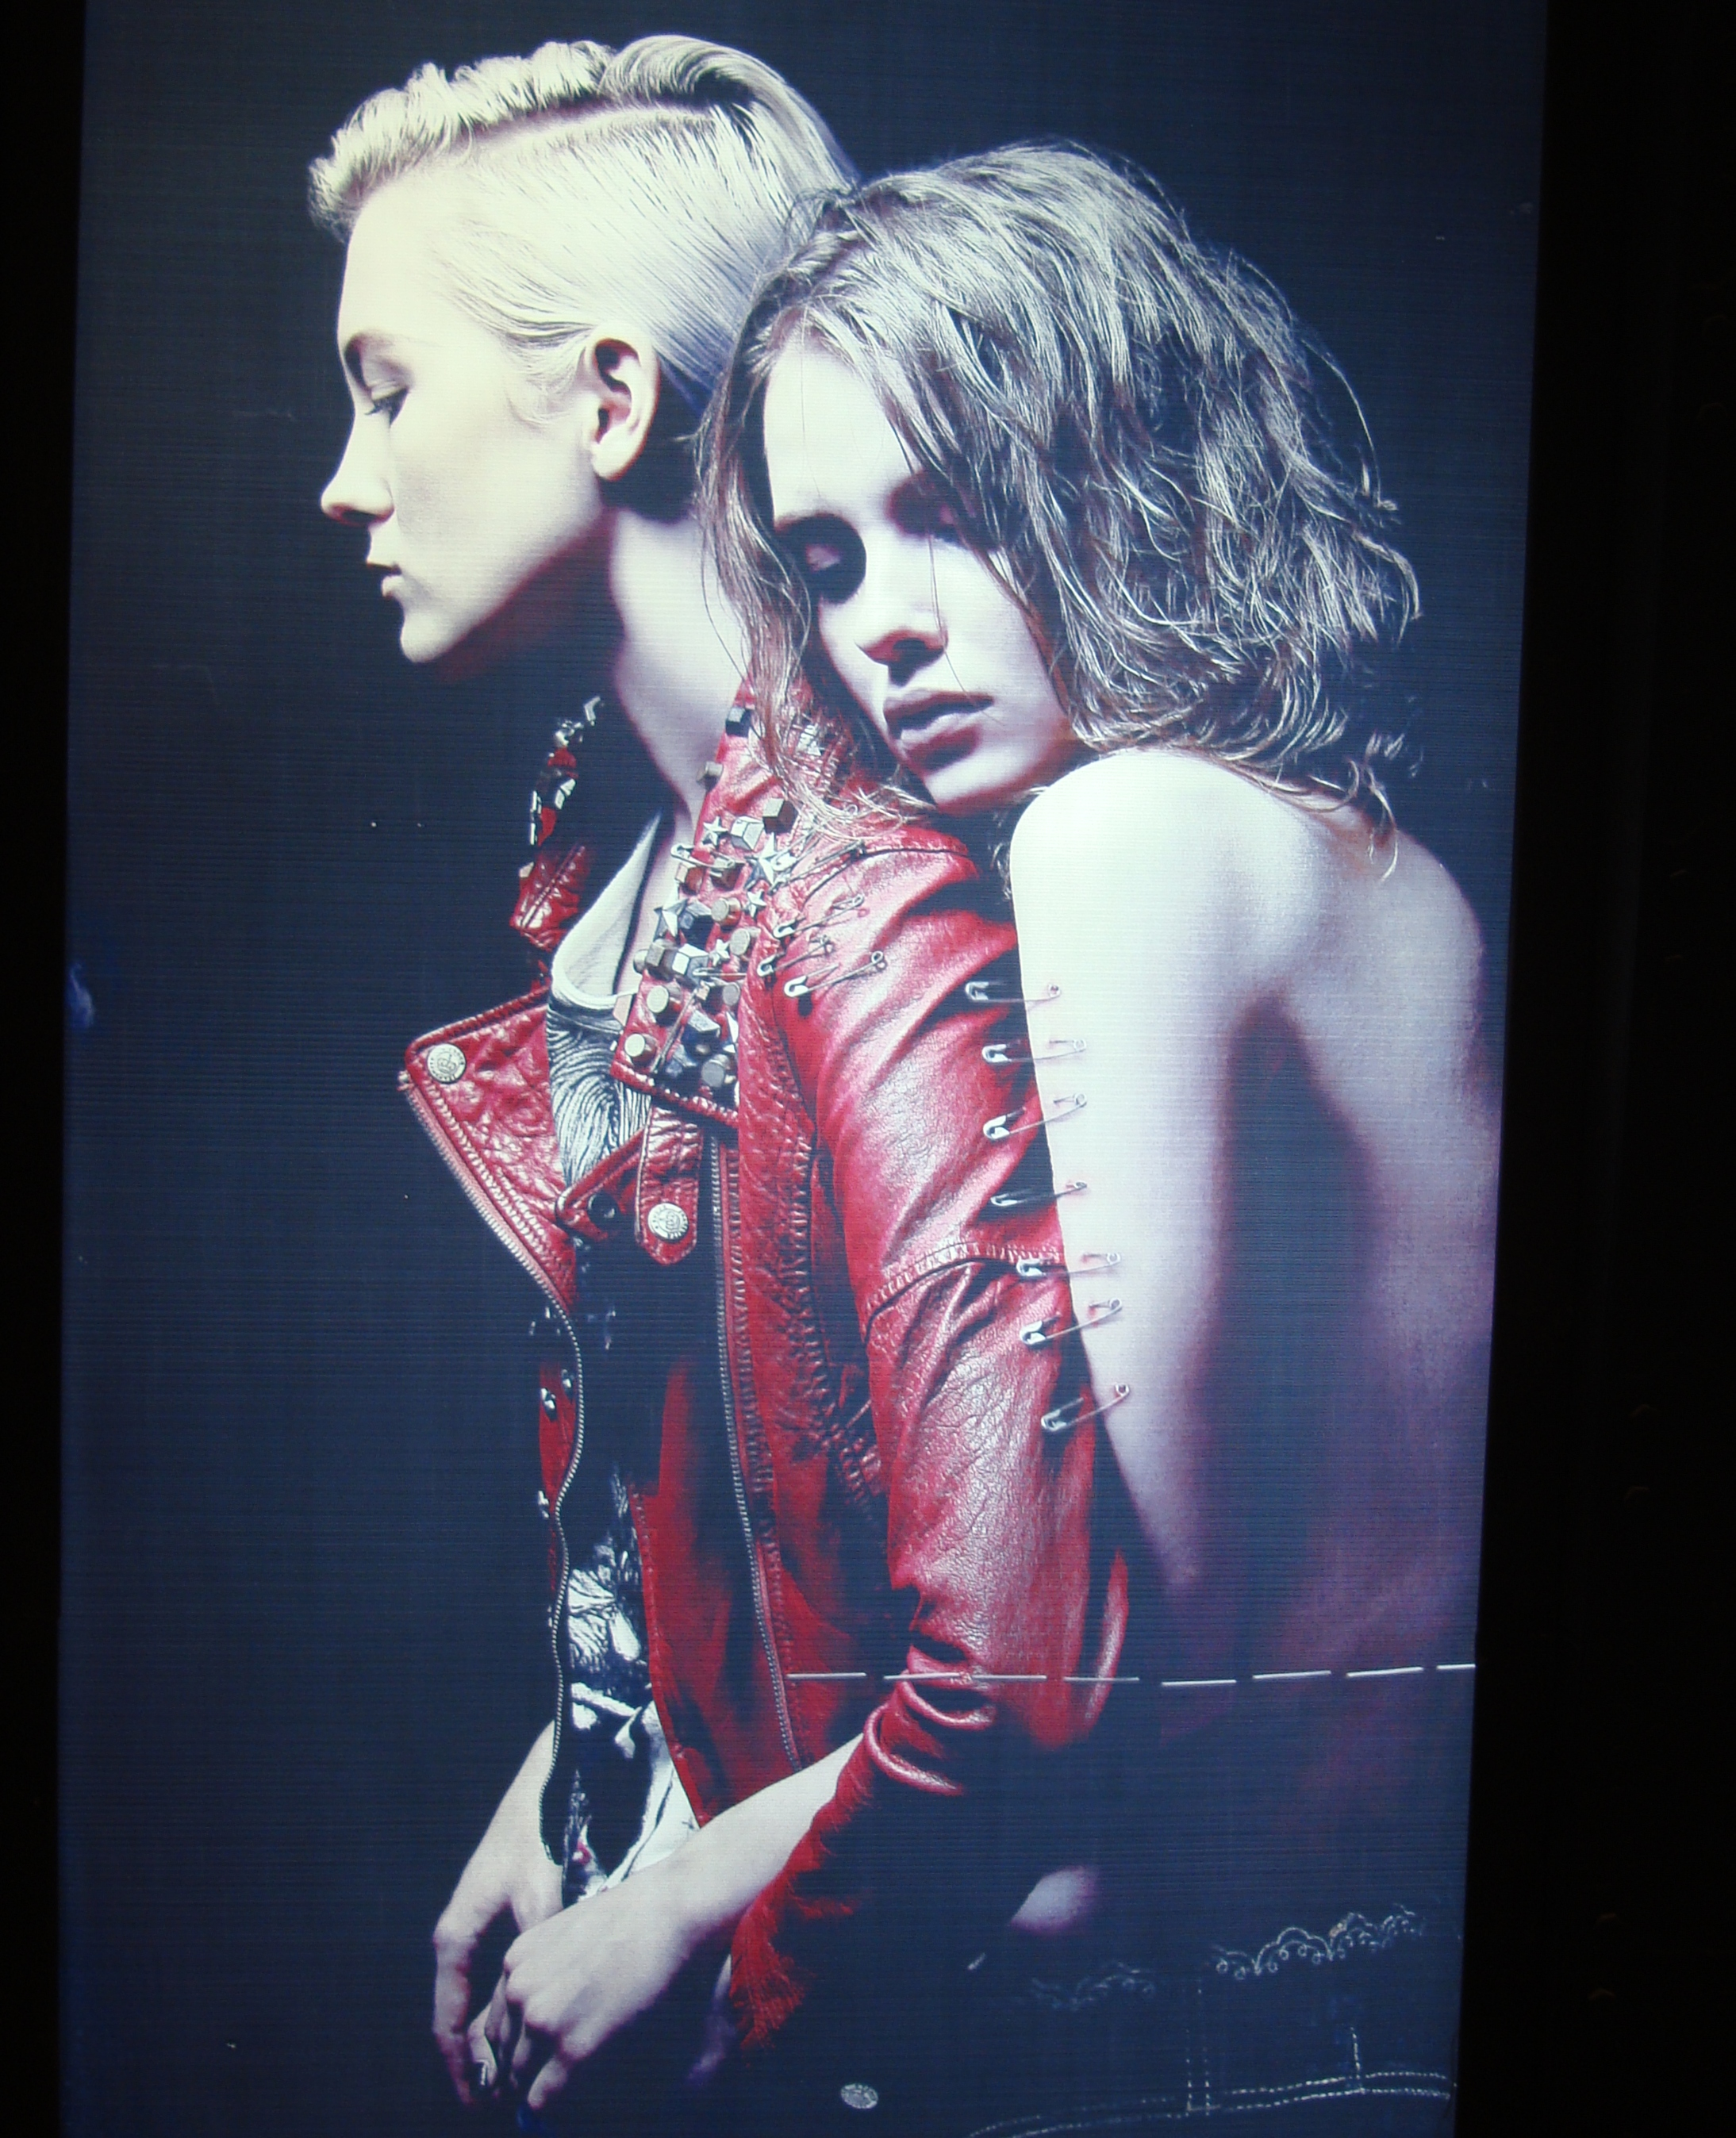 Picture: Somewhat disturbing S&M poster advertising clothing and a lifestyle. Shanghai, China